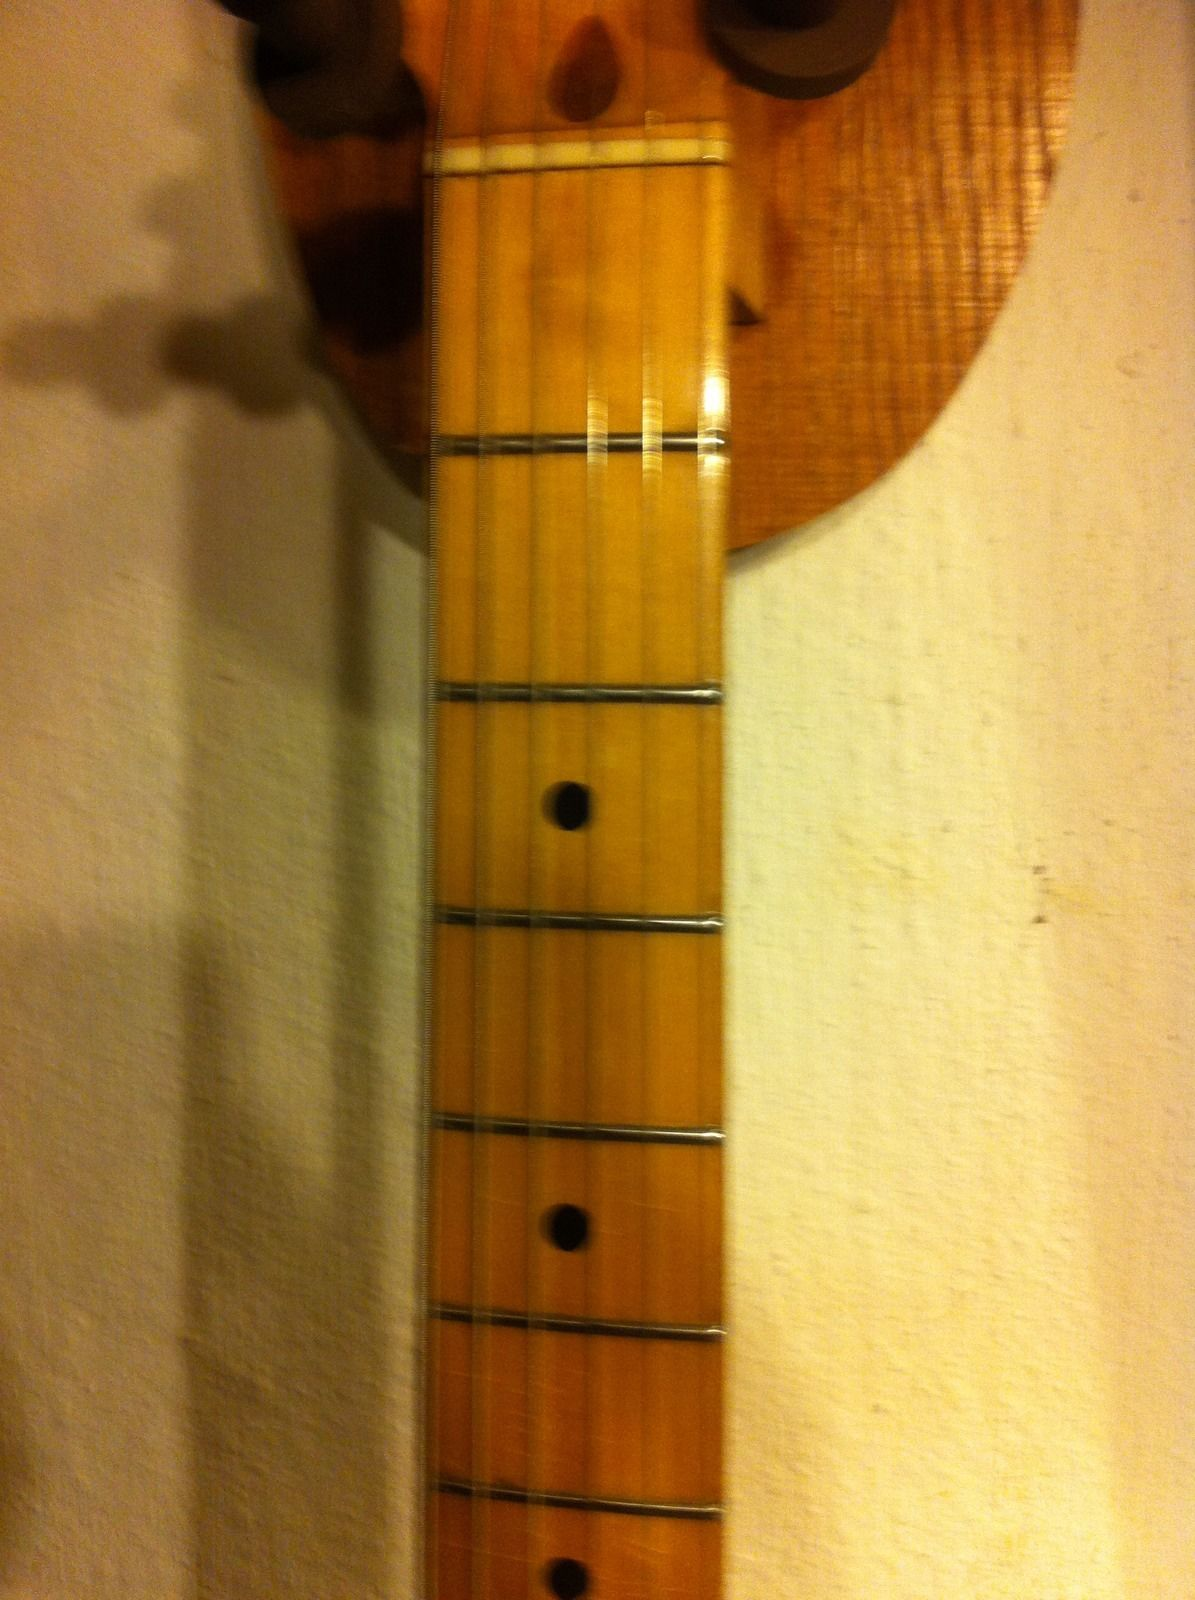 Fender Stratocaster 1982 Dan Smith plays great with tweed case